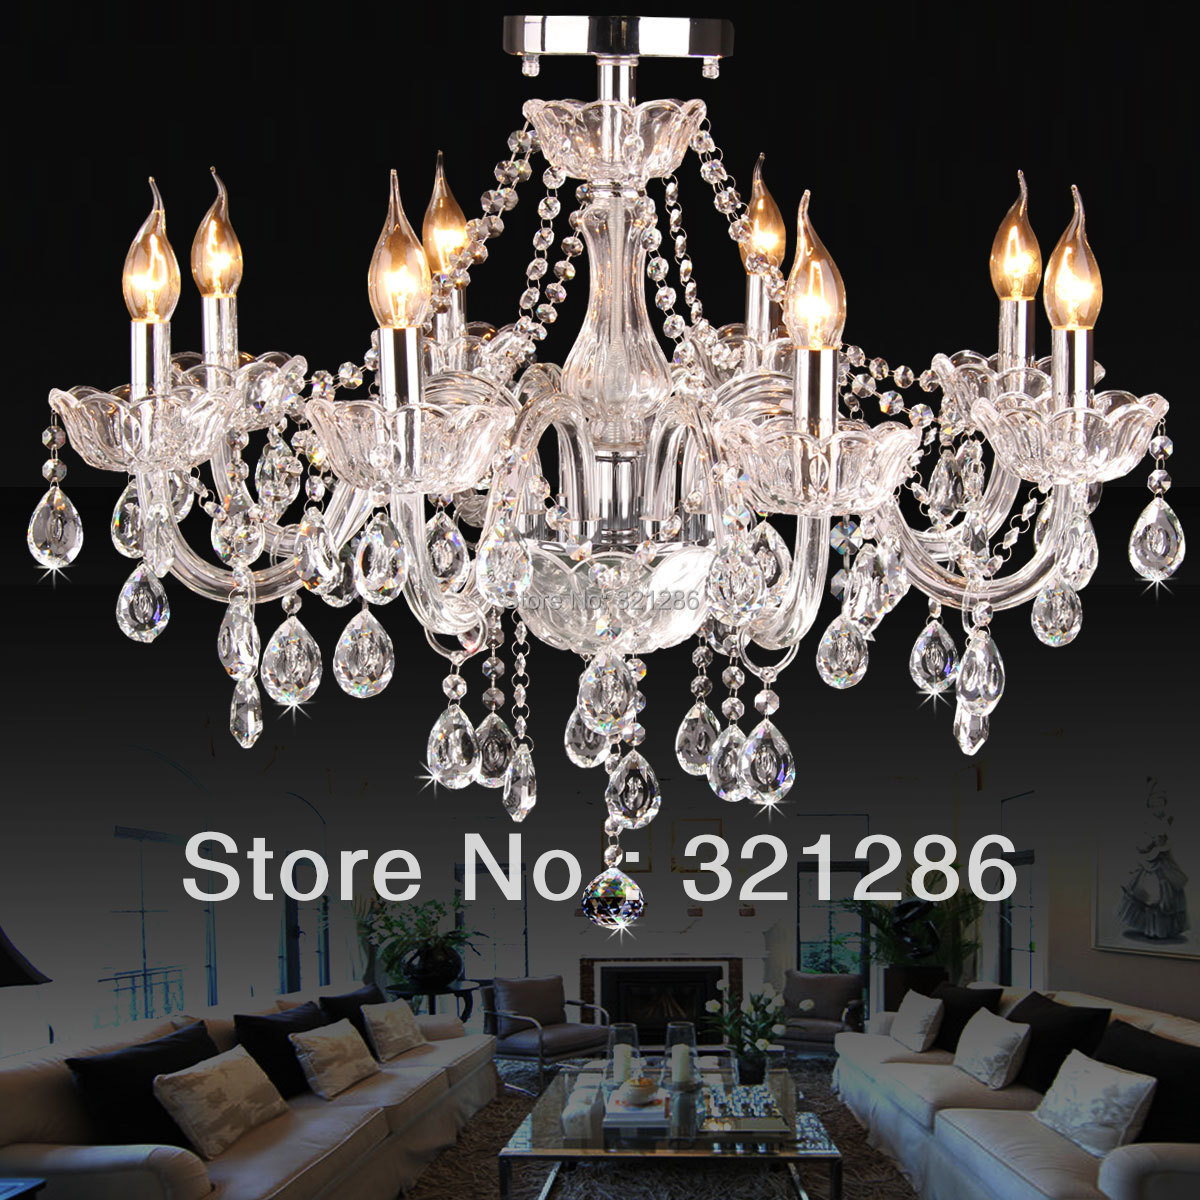 6/8 brazos Moda crystal k9 chandelier luces del dormitorio living crystal chandelier light led dormitorio candiles de cristal chan